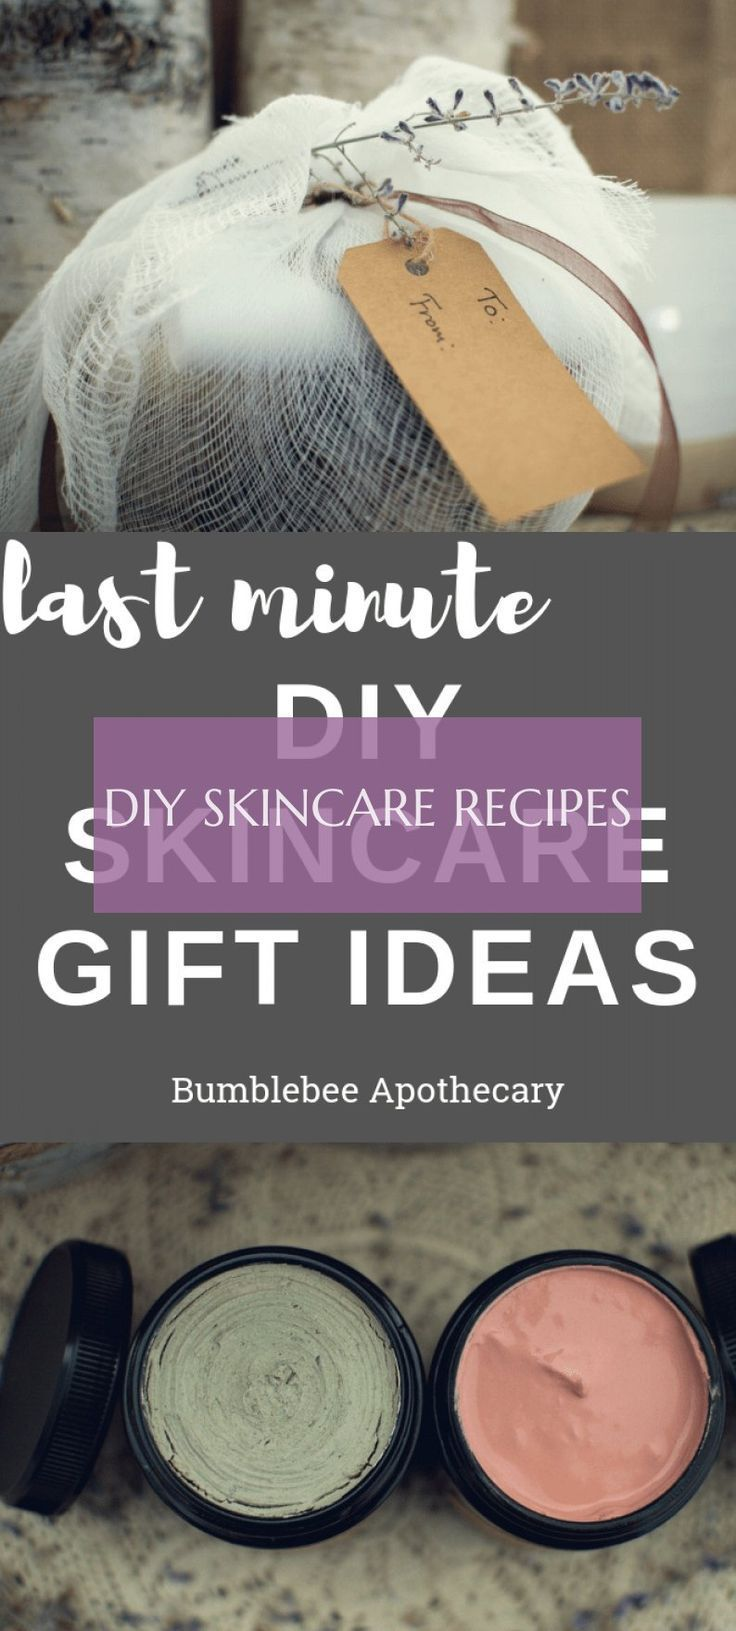 diy skincare recipes | DIY Skincare Recipes - #DIY #Skin Care #recipes #Recipe ...  -  Hautpflege-Rezepte